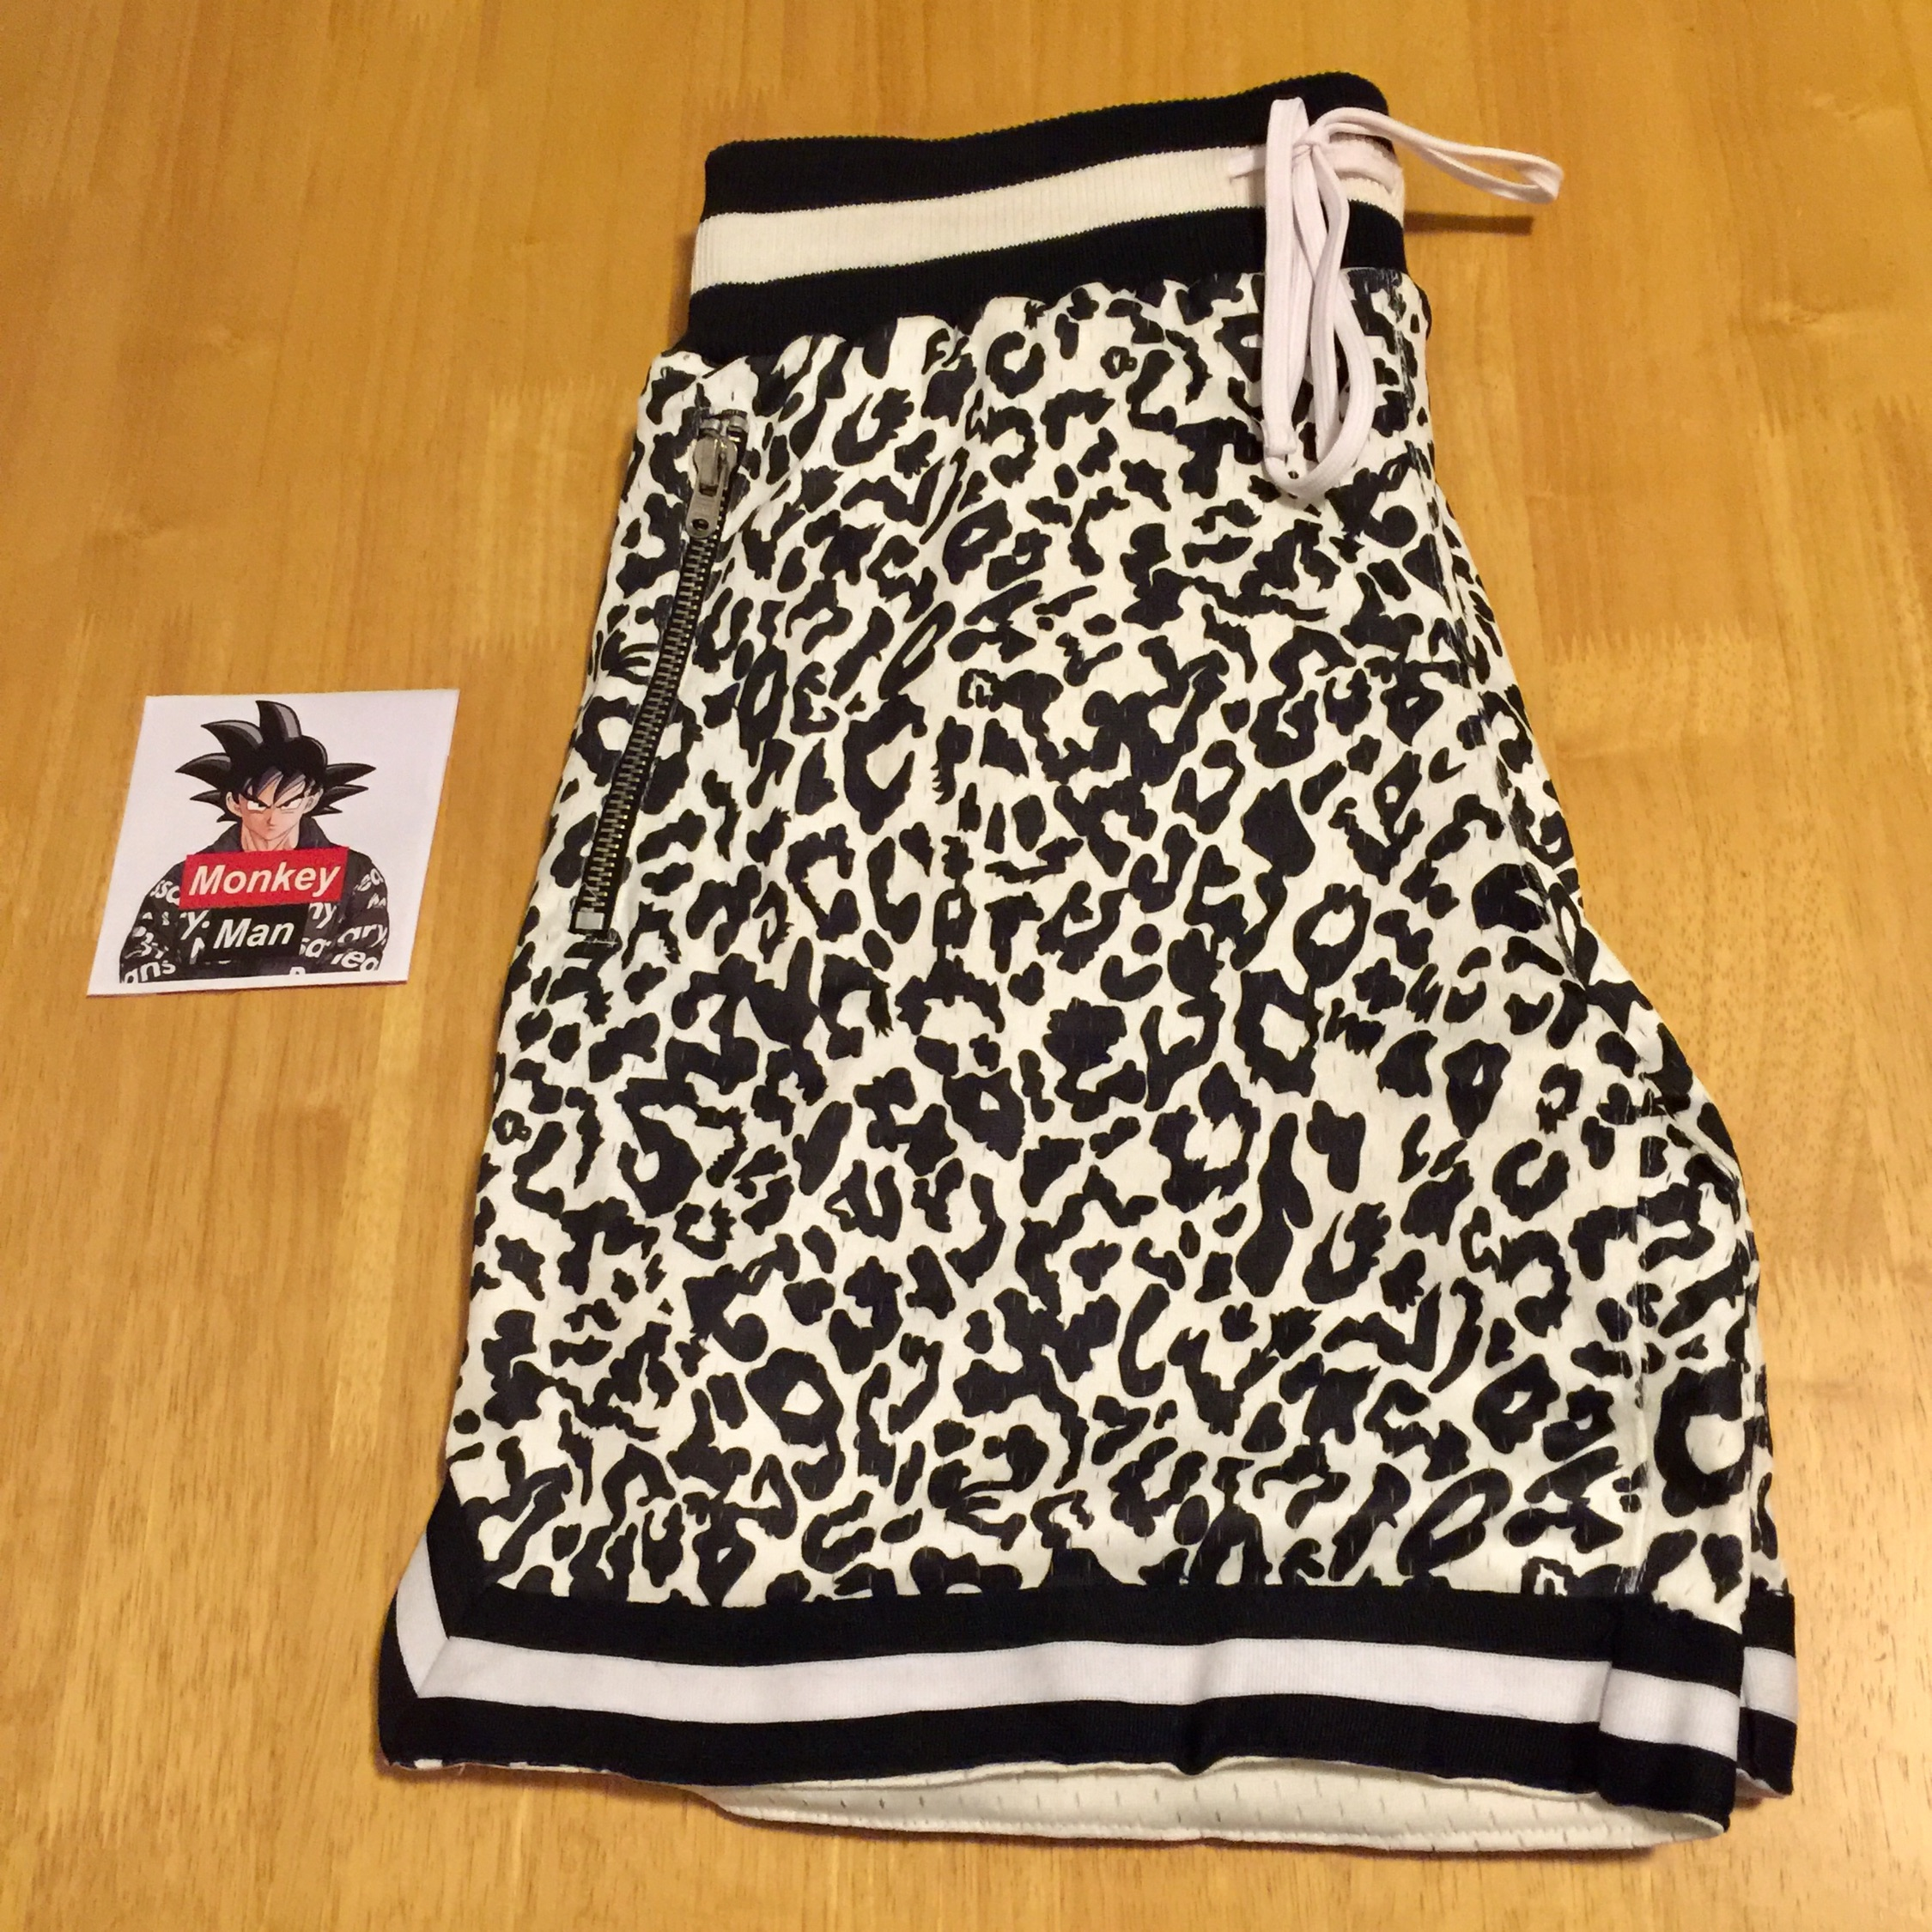 Black Cat Print Basketball Shorts S